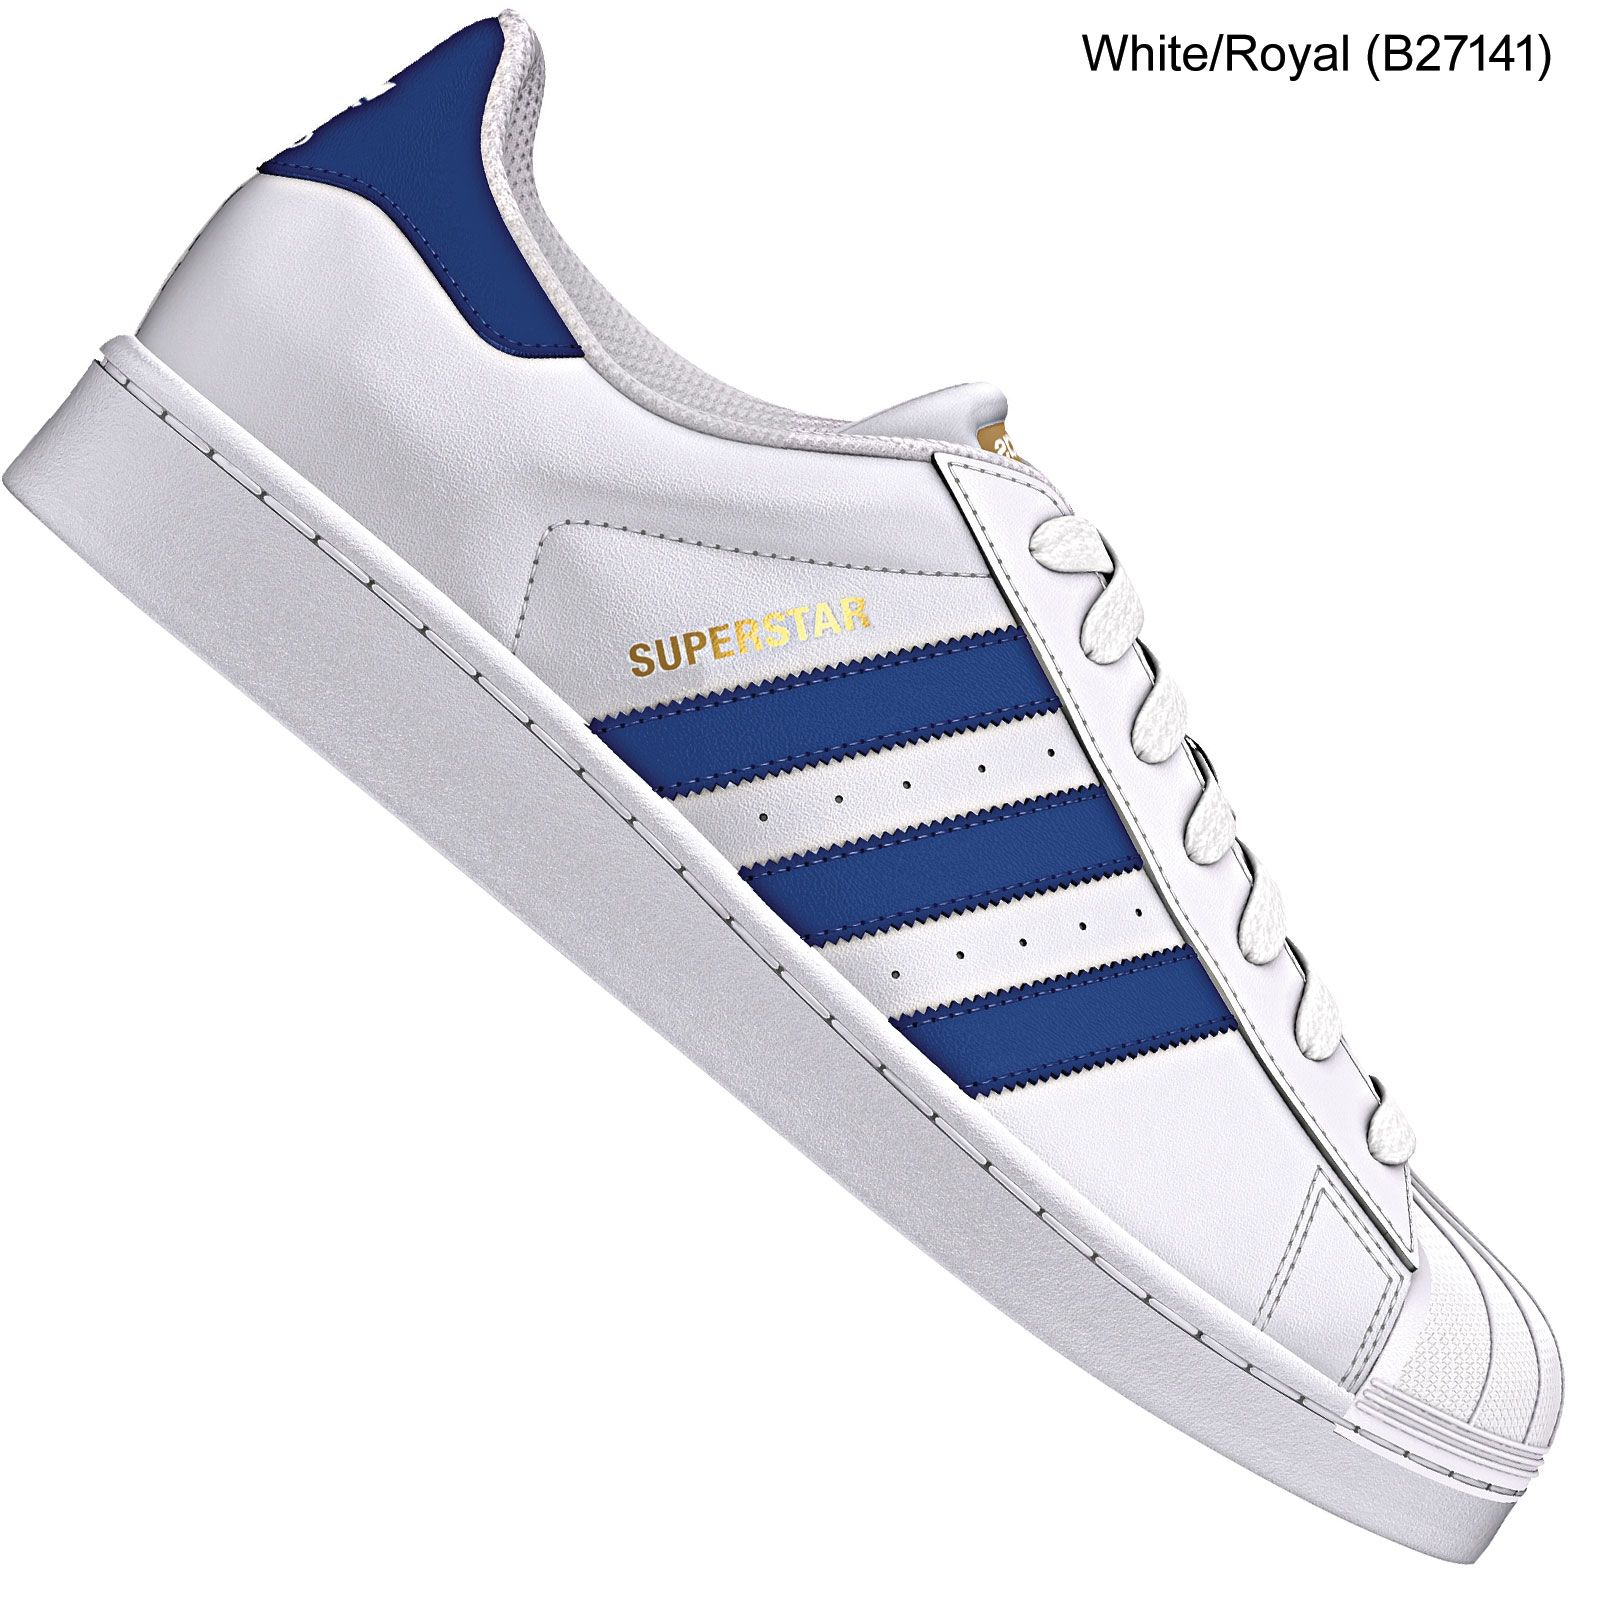 Adidas-Superstar-2-Originals-Damen-Kinder-Sneaker-Freizeit-Schuhe-Gr ...